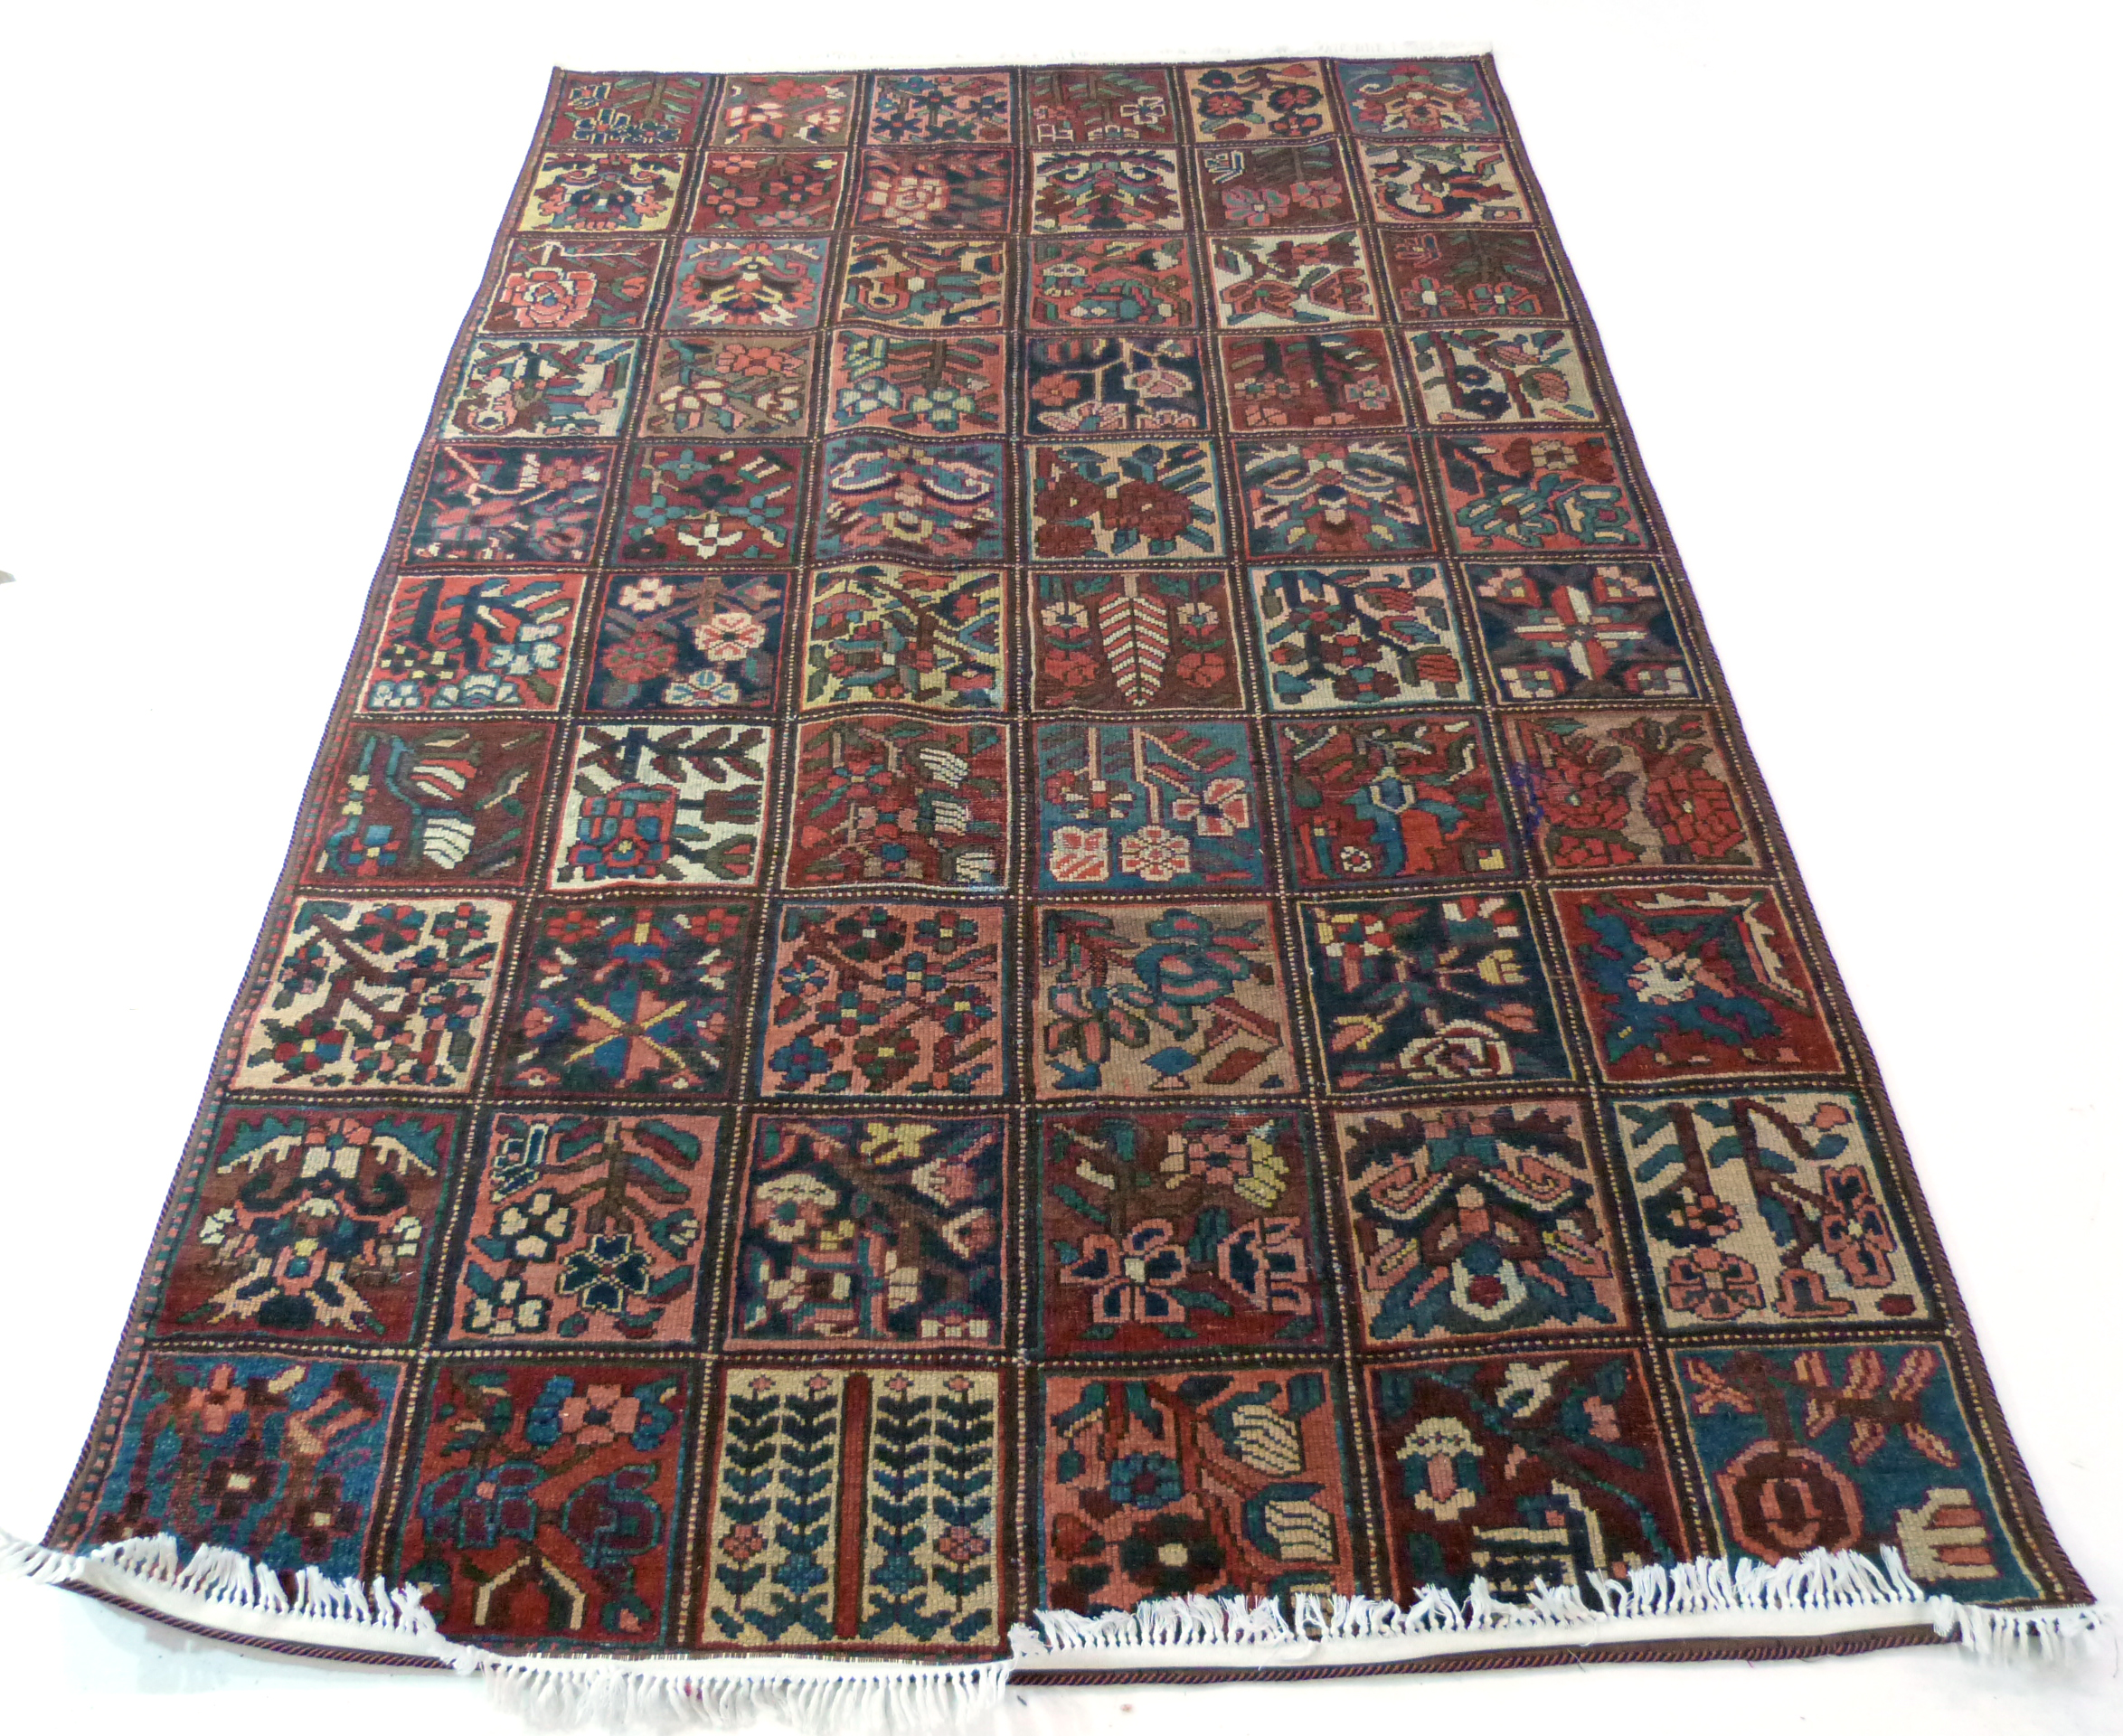 Vintage Persian Baktia Carpet, with all-over panelled design 260cm x 167cm approximately - Image 2 of 7